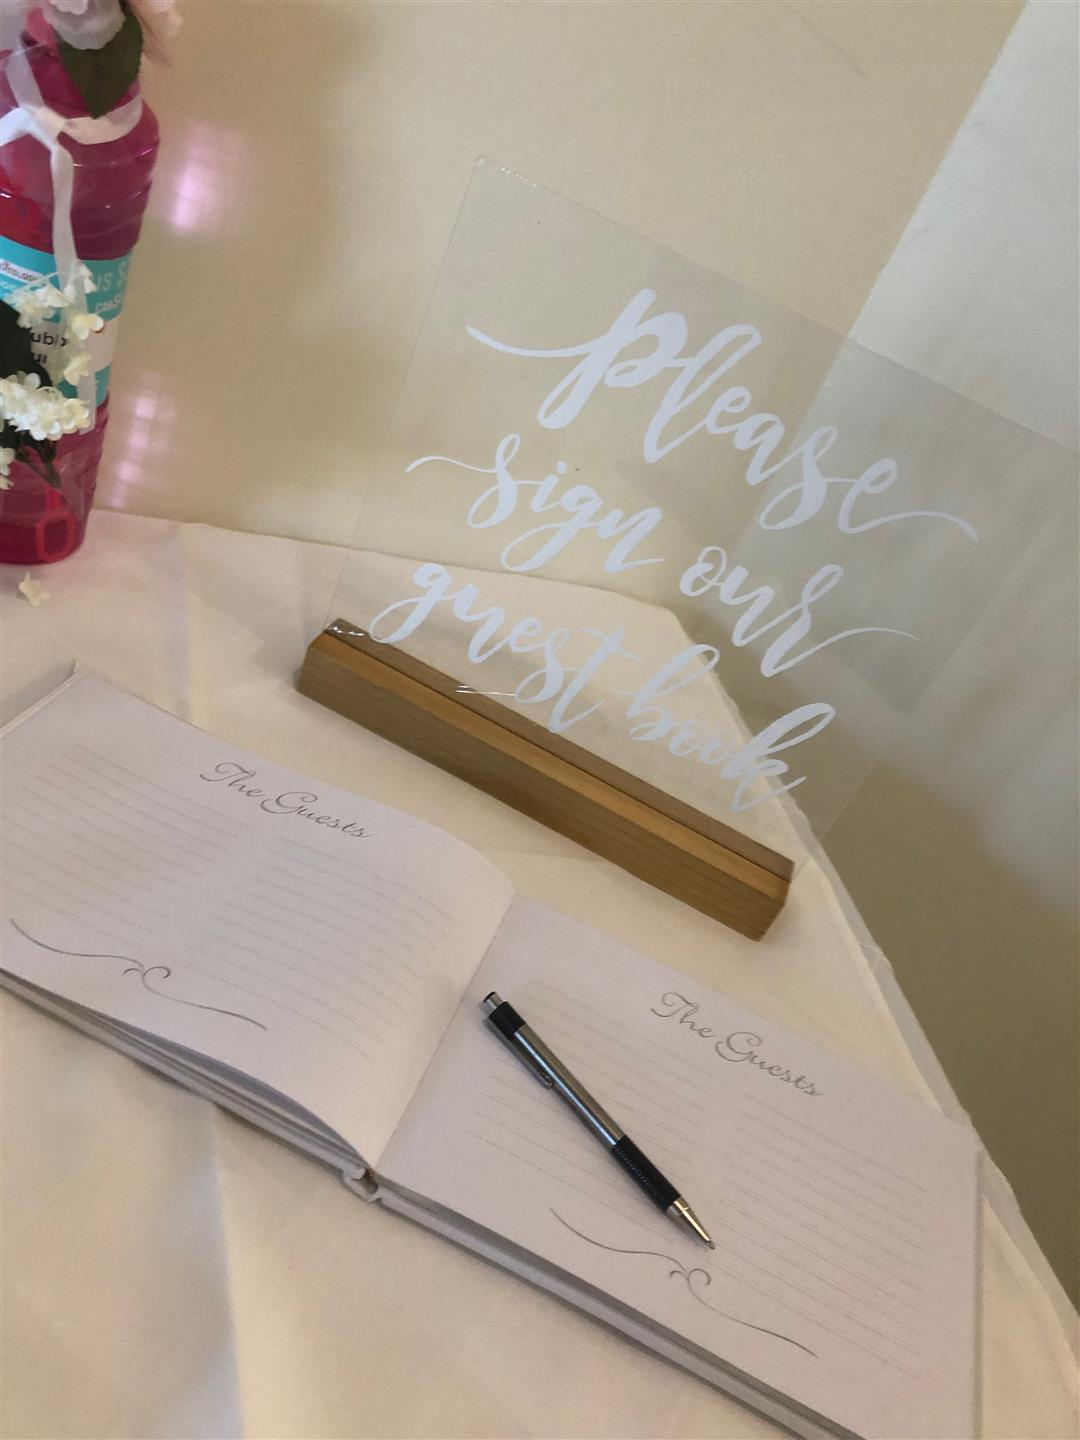 guest book for a wedding reception